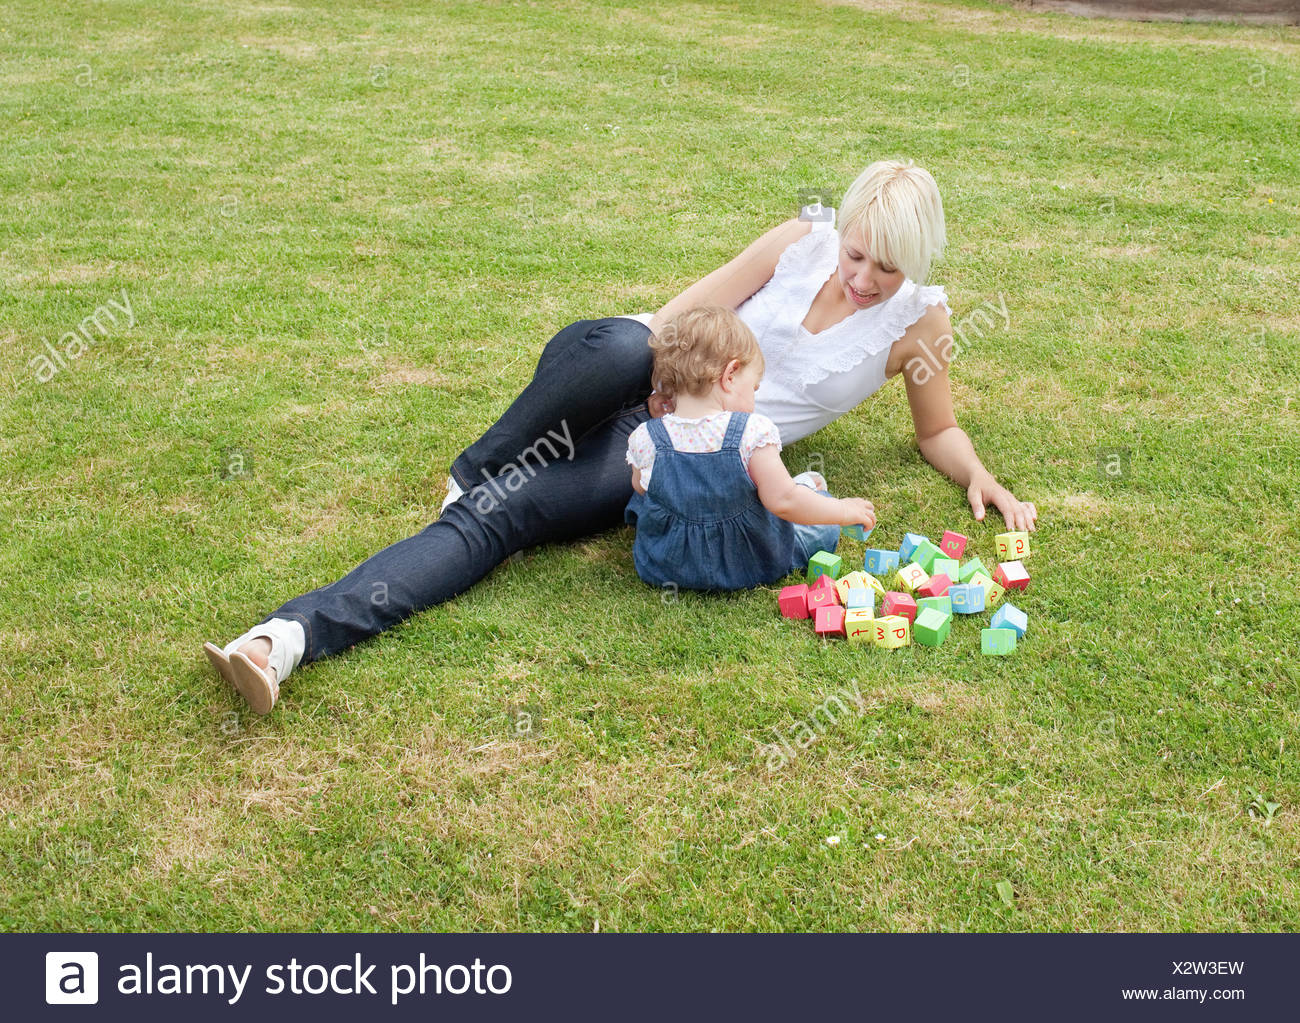 Familiy playing in the garden - Stock Image